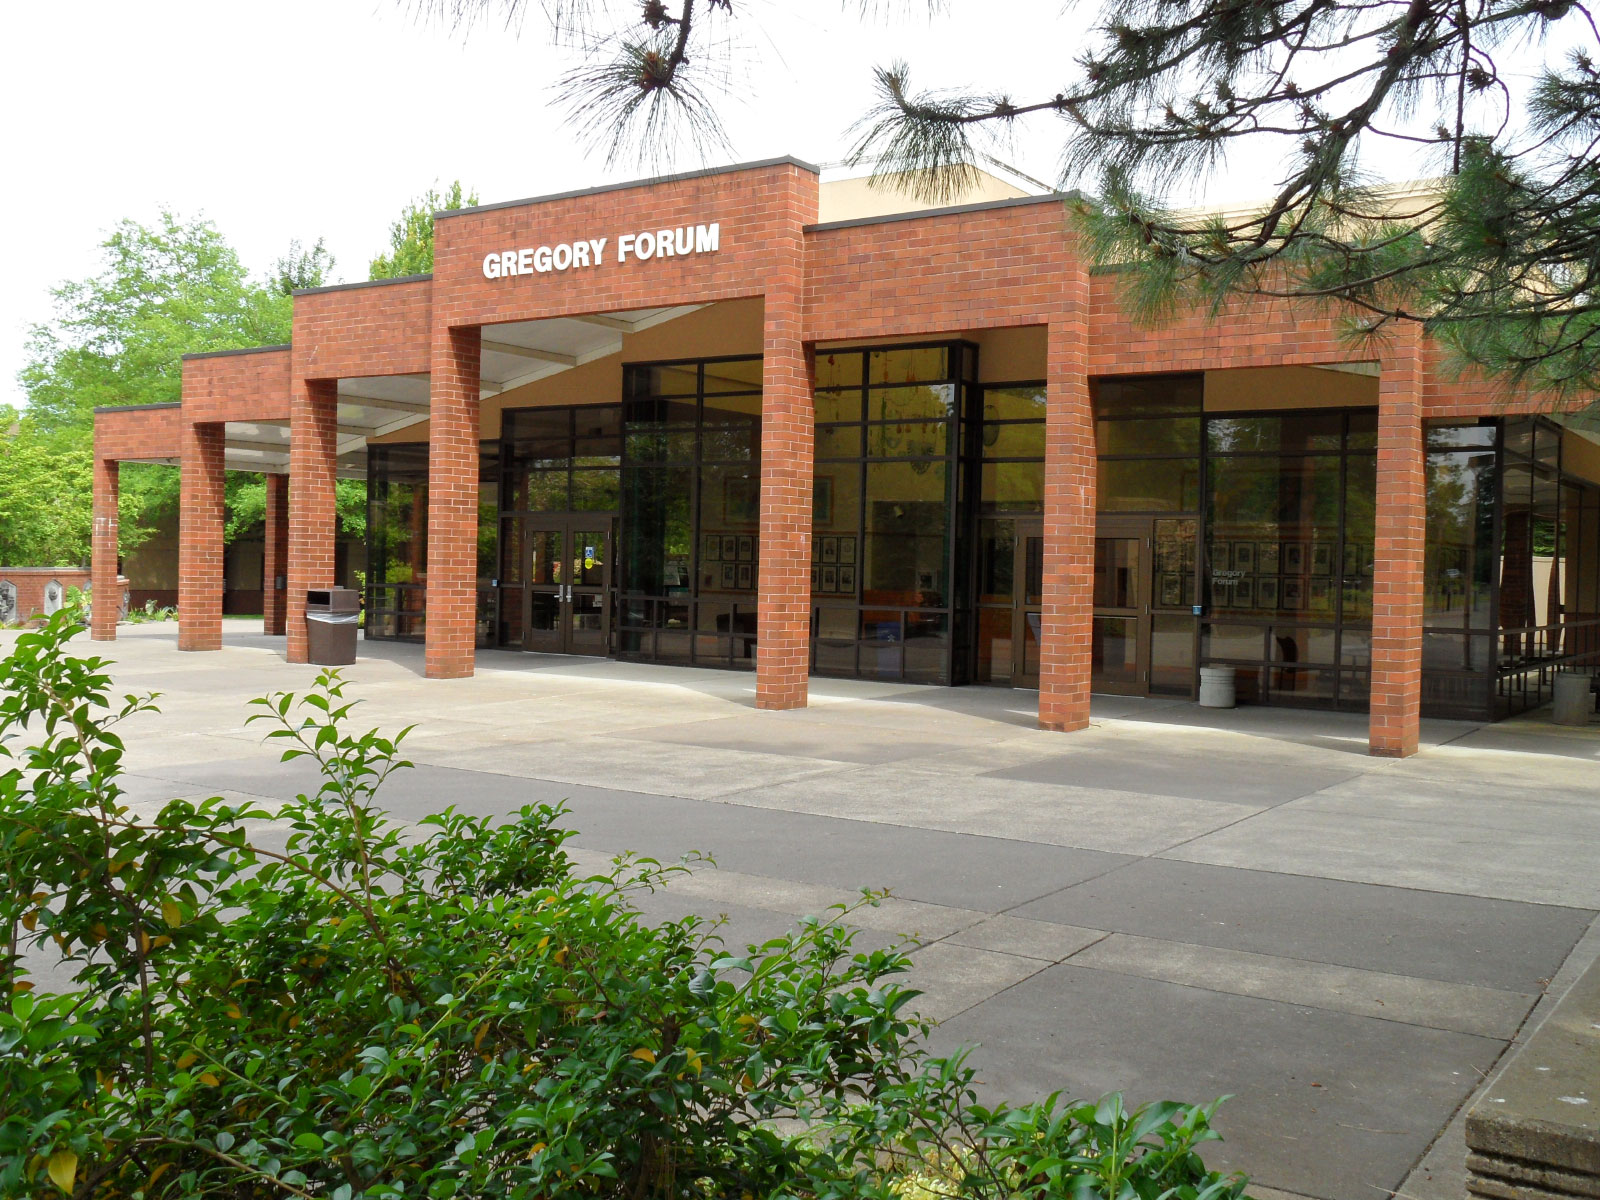 The entrance to Gregory Forum, featuring brick arches, full walls of glass and leafy surroundings at the Oregon City campus